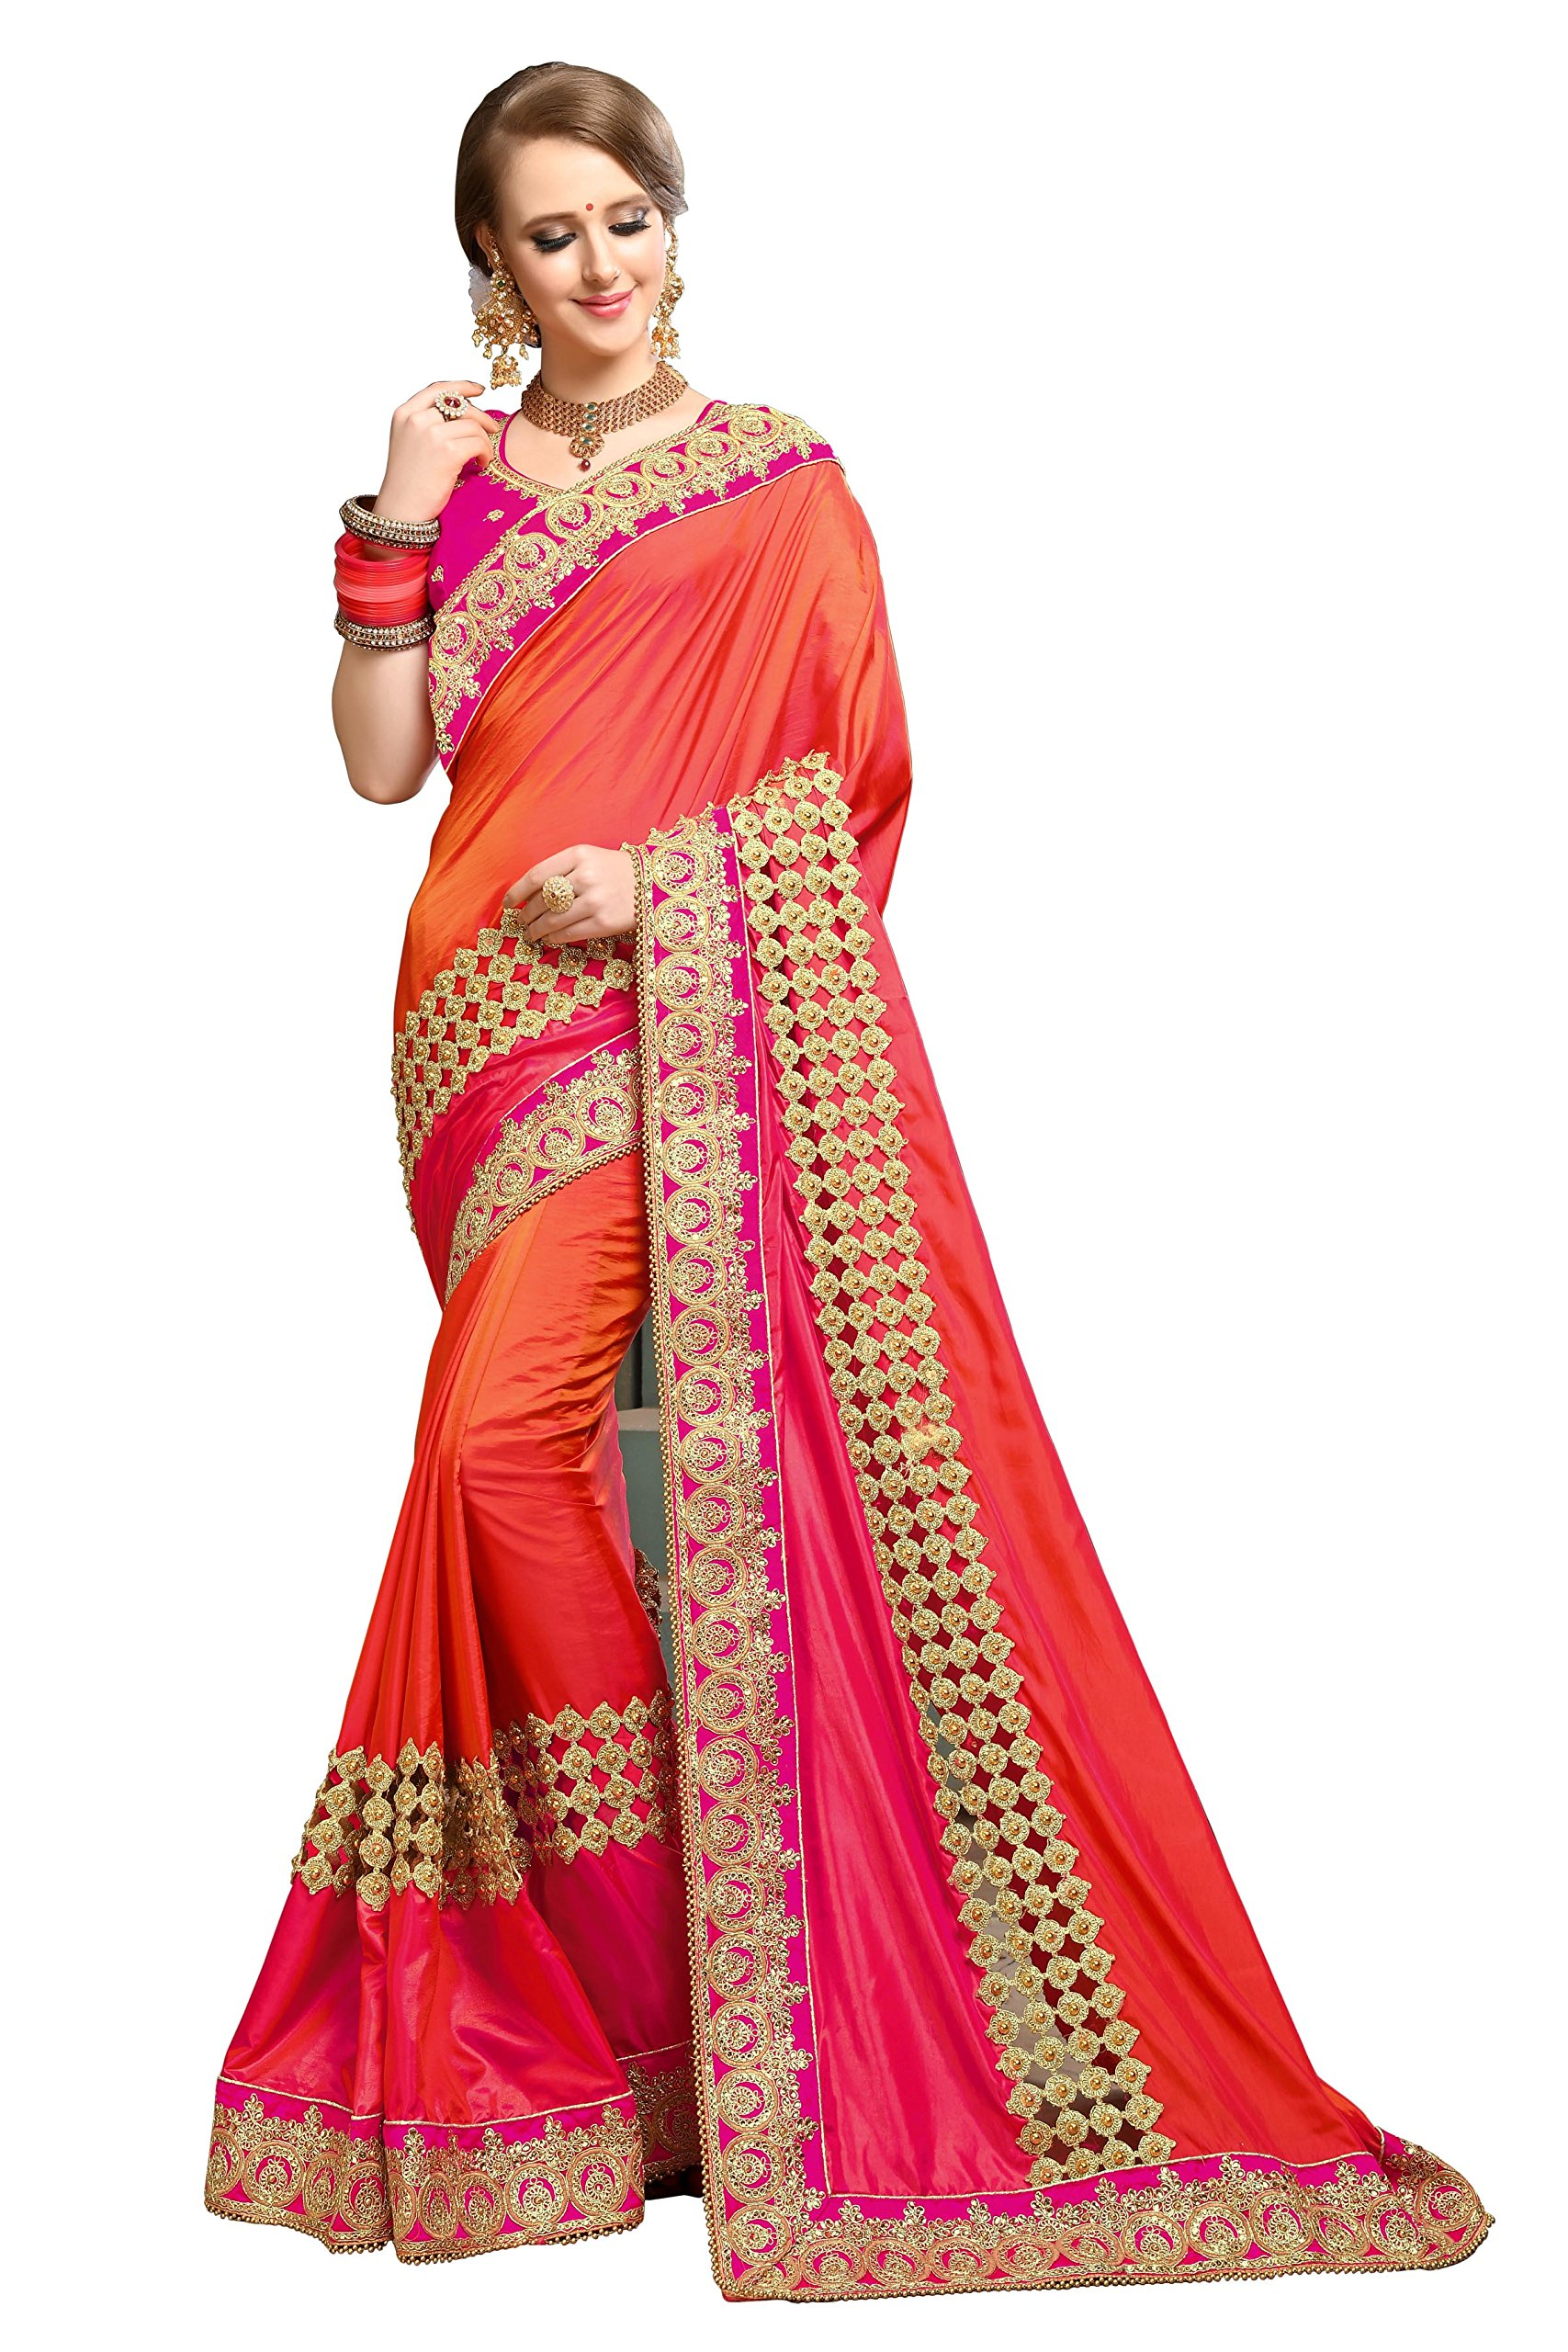 Magneitta Women's Paper Silk Saree With Blouse Piece